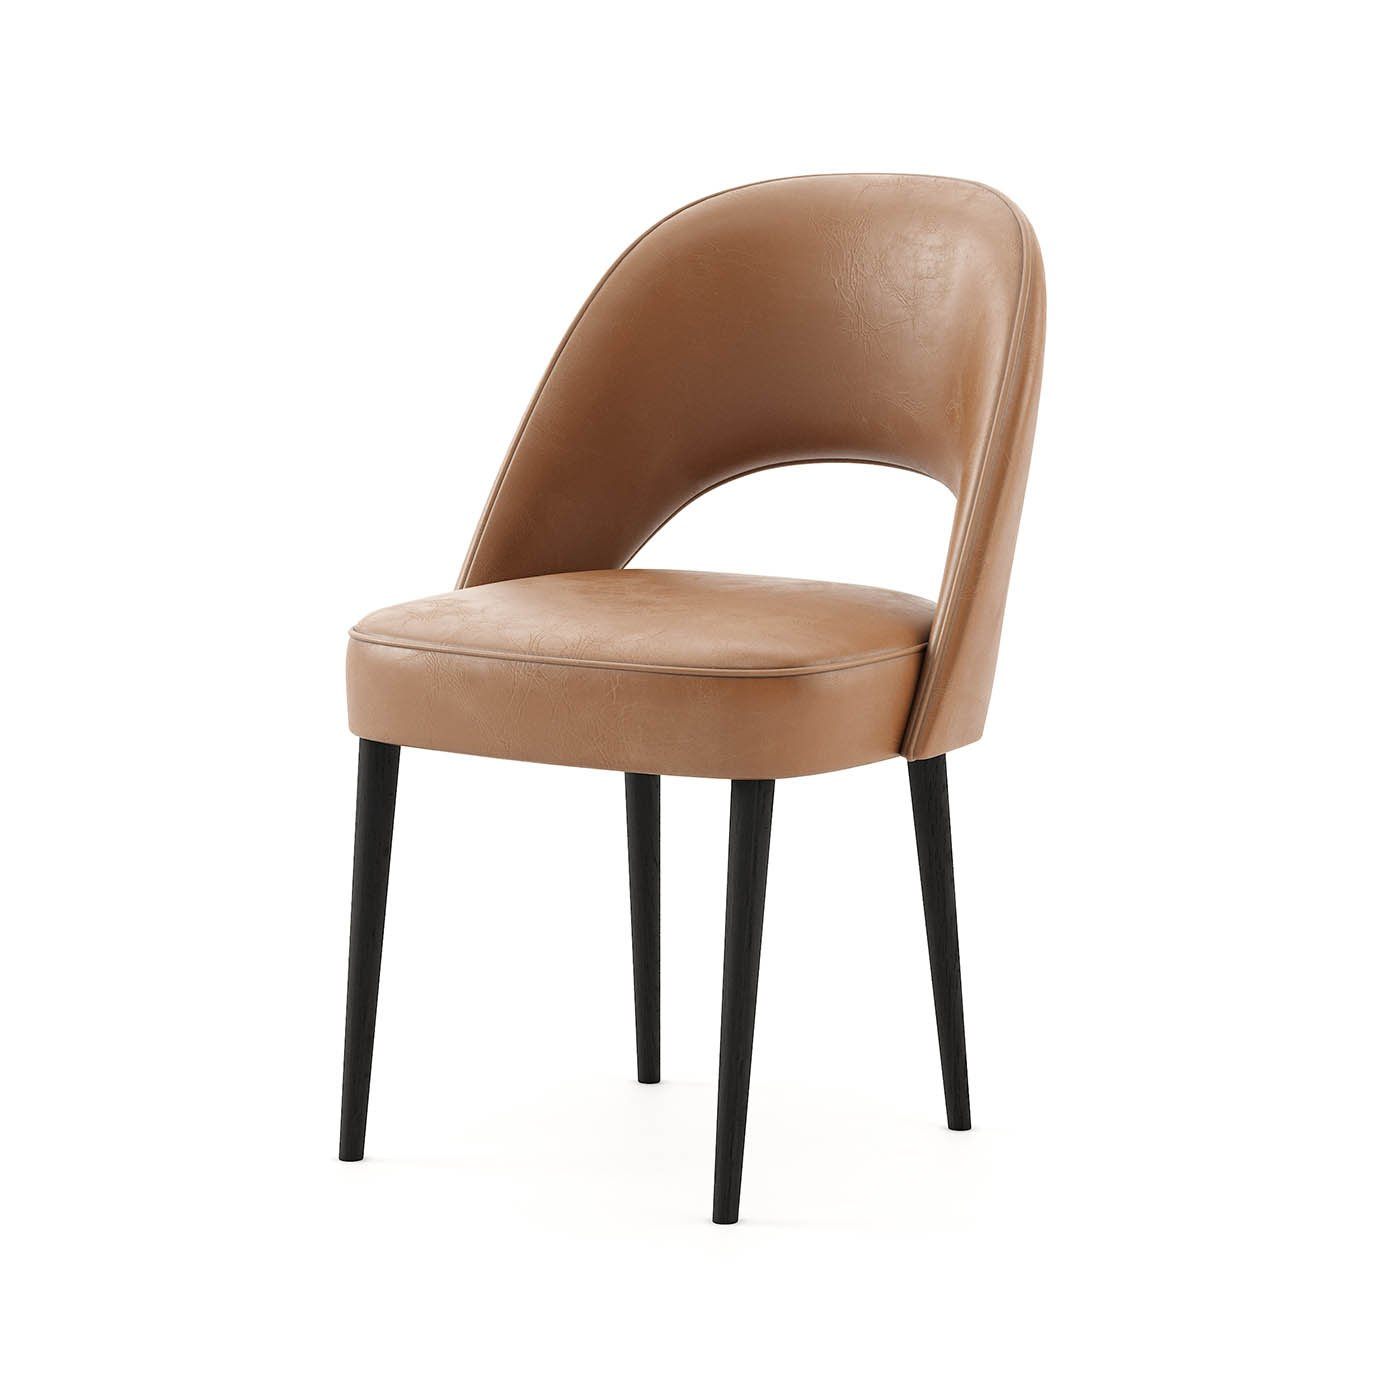 Amour Chair